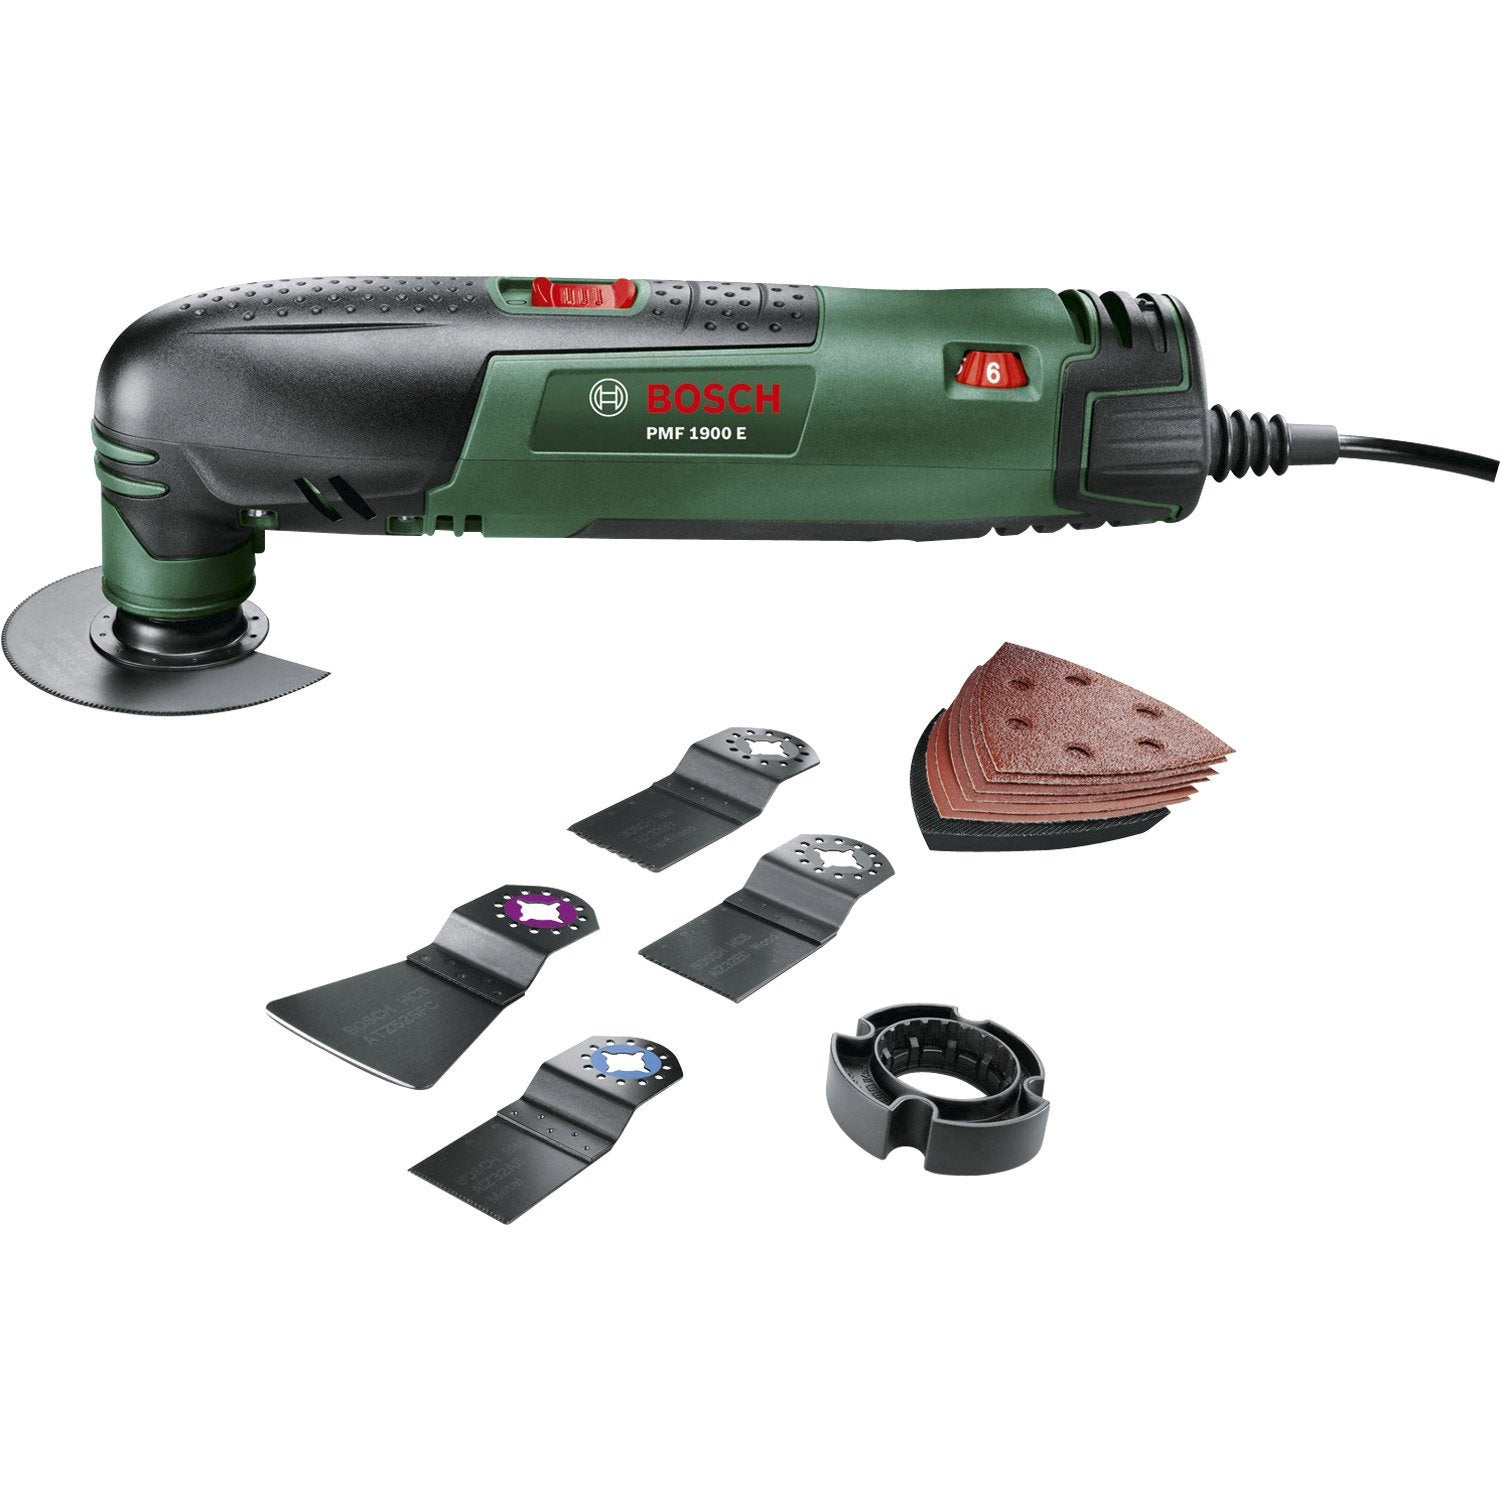 Ponceuse multifonction bosch pmf 1900e 190w leroy merlin - Ponceuse multifonction bosch ...